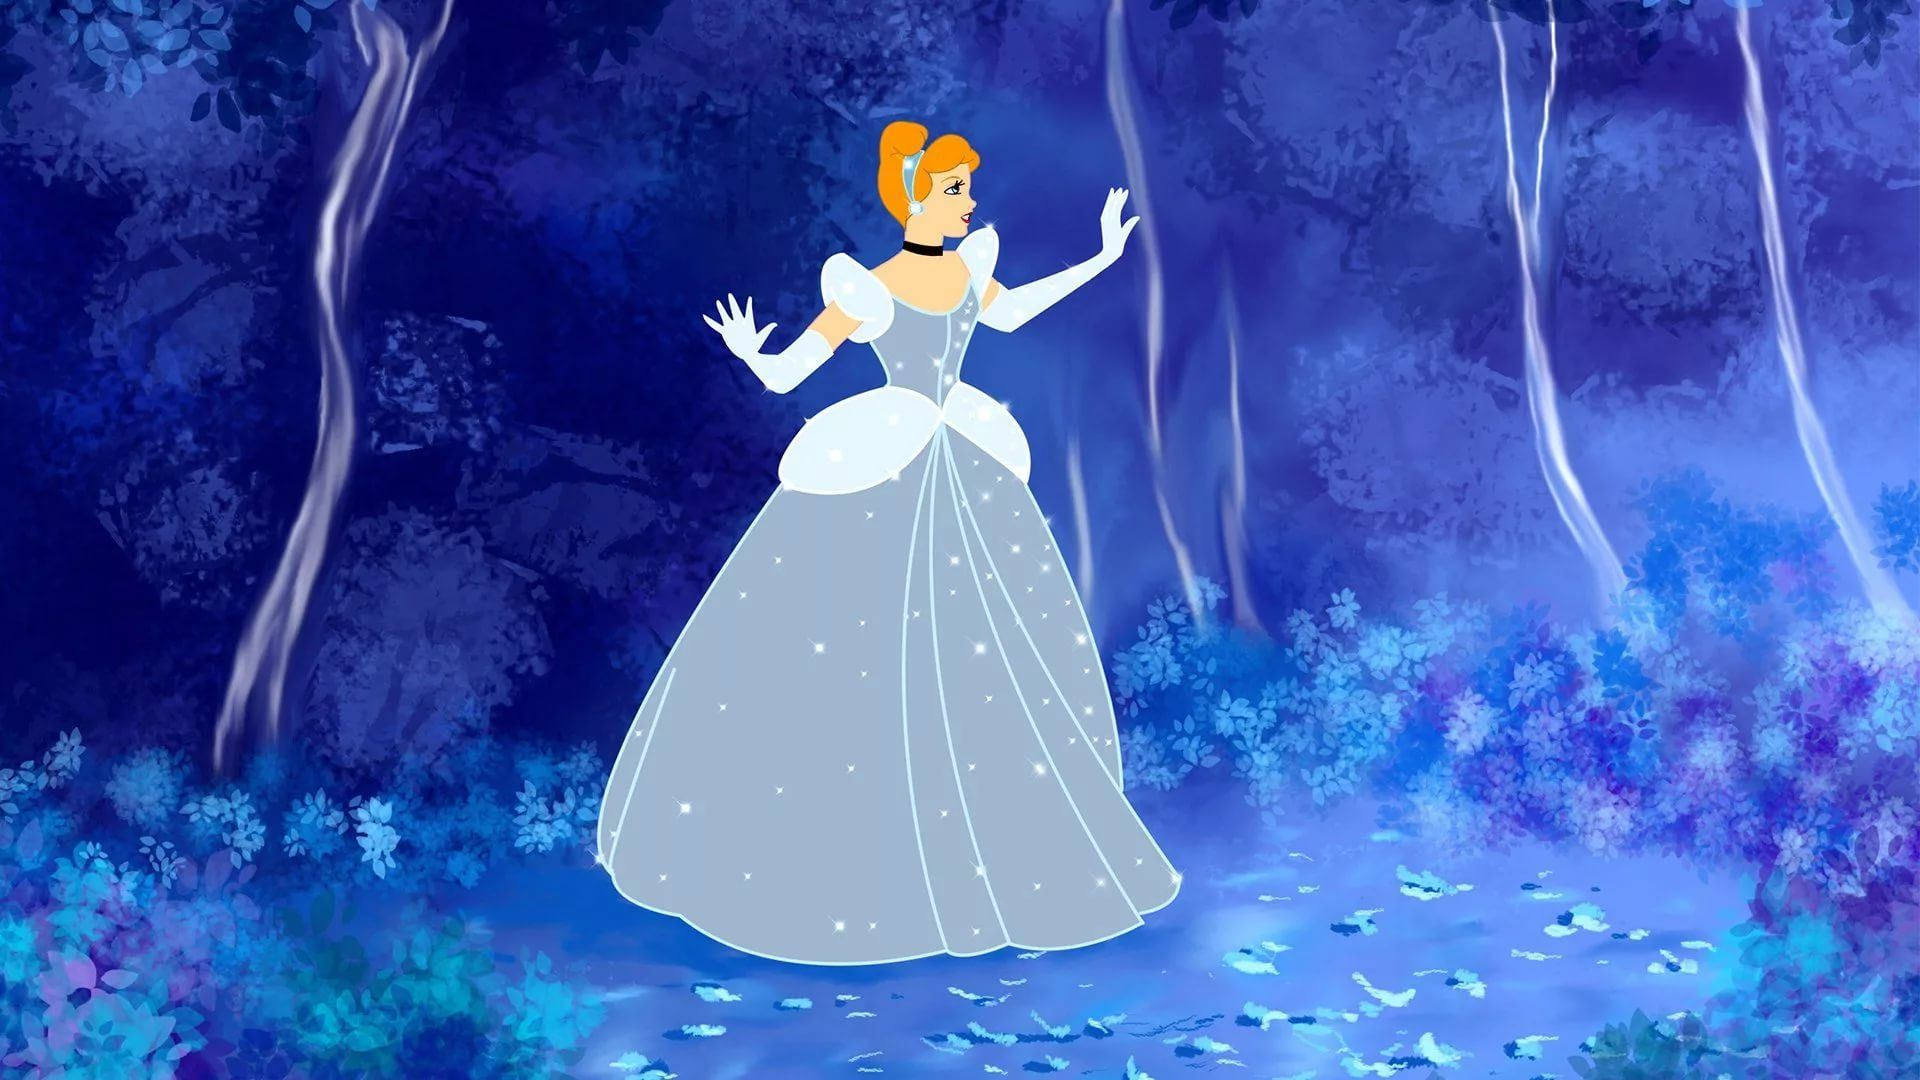 Cinderella desktop wallpaper download